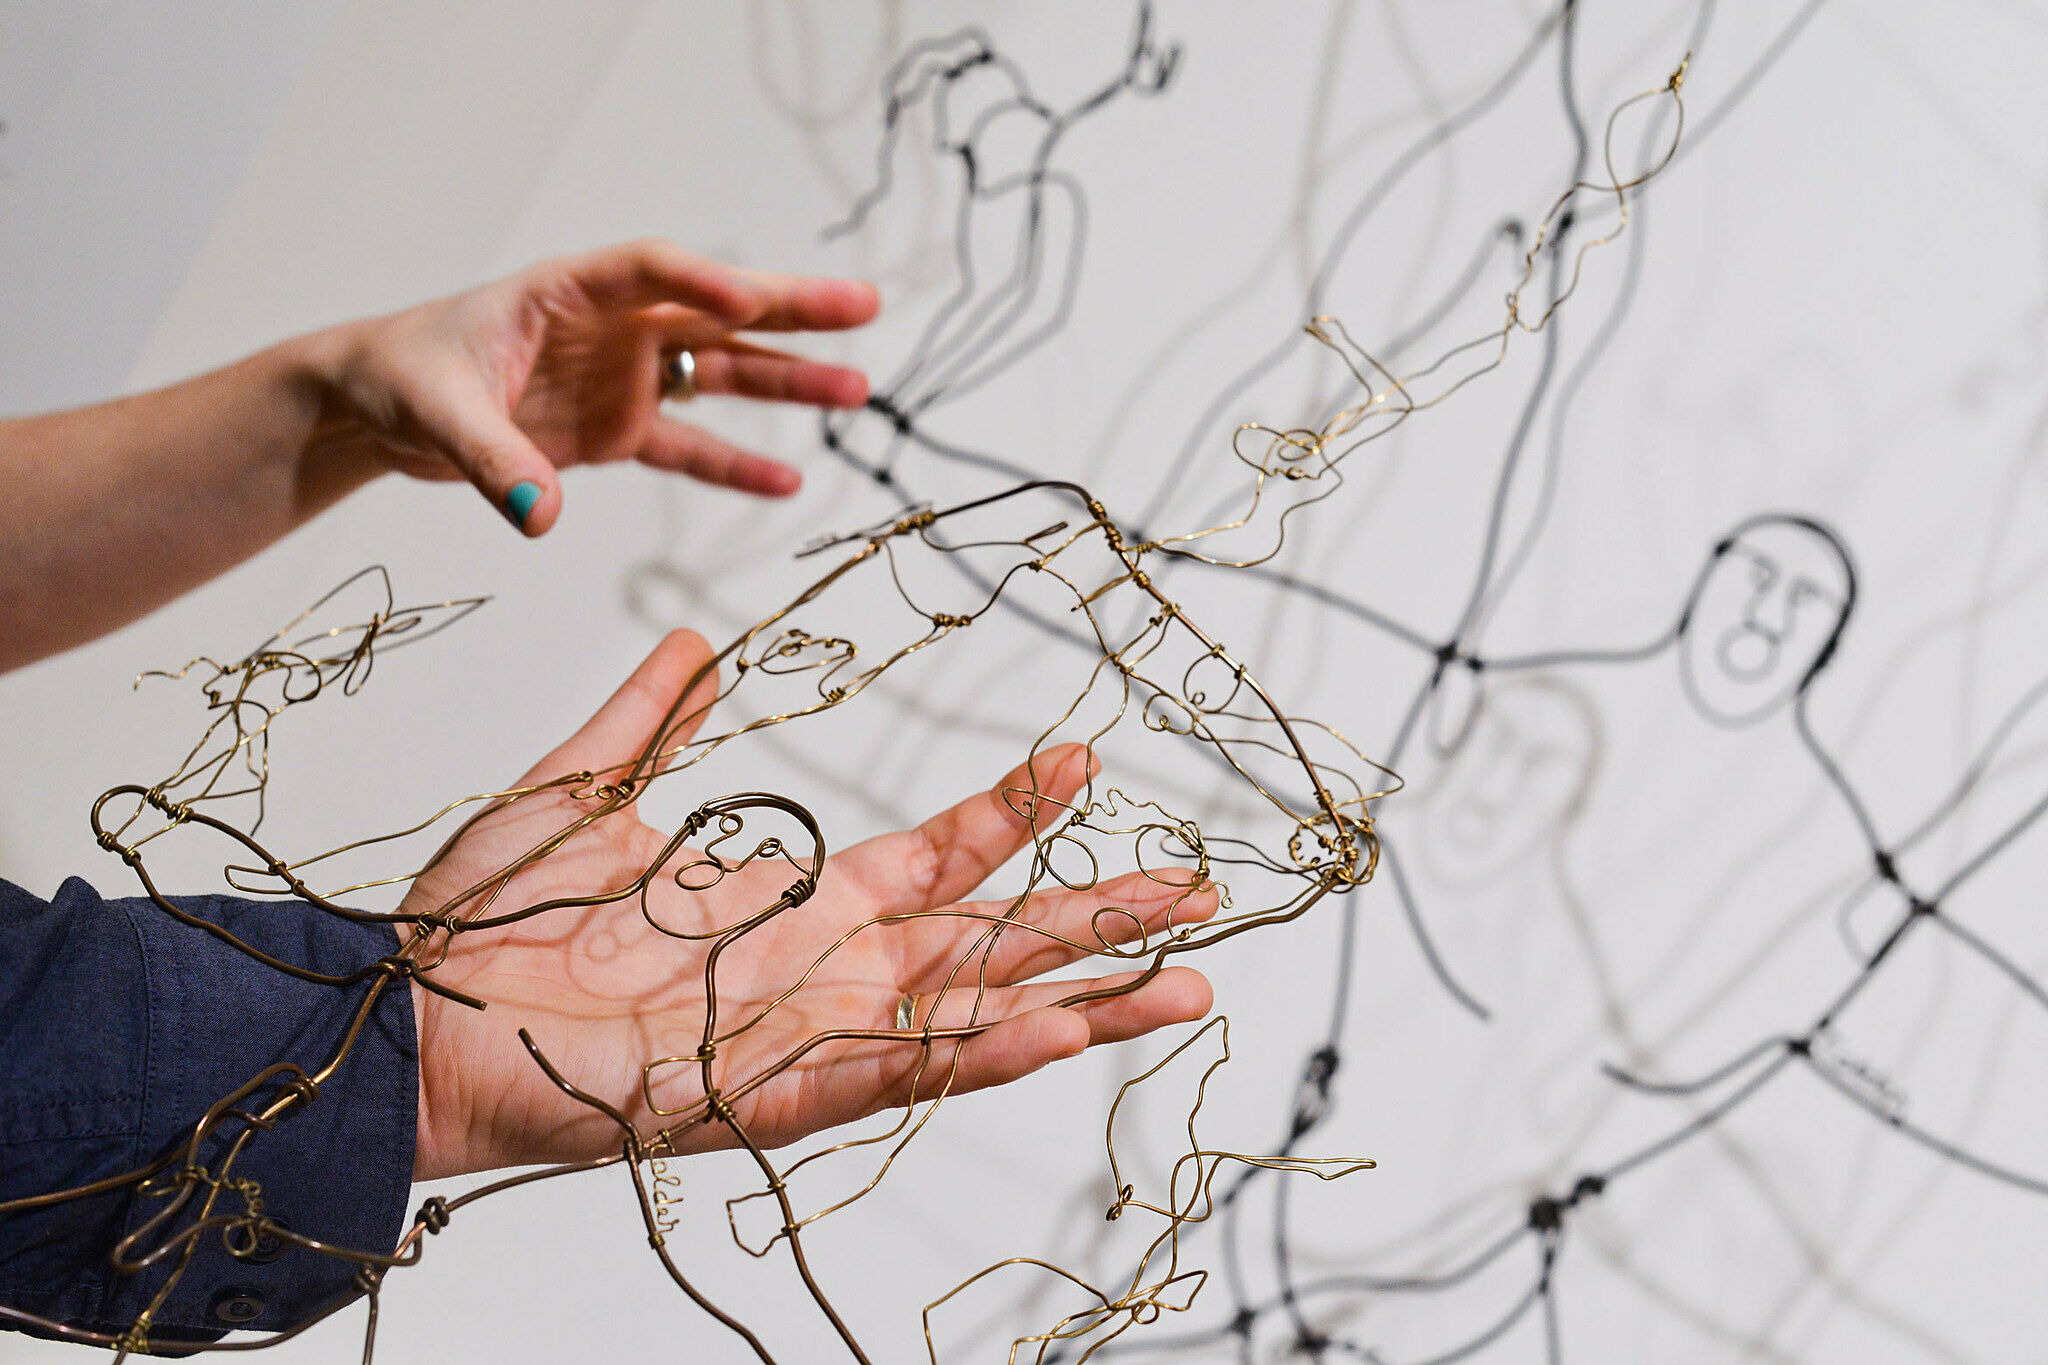 Hands hold a touch object of Alexander Calder's wire sculpture The Brass Family